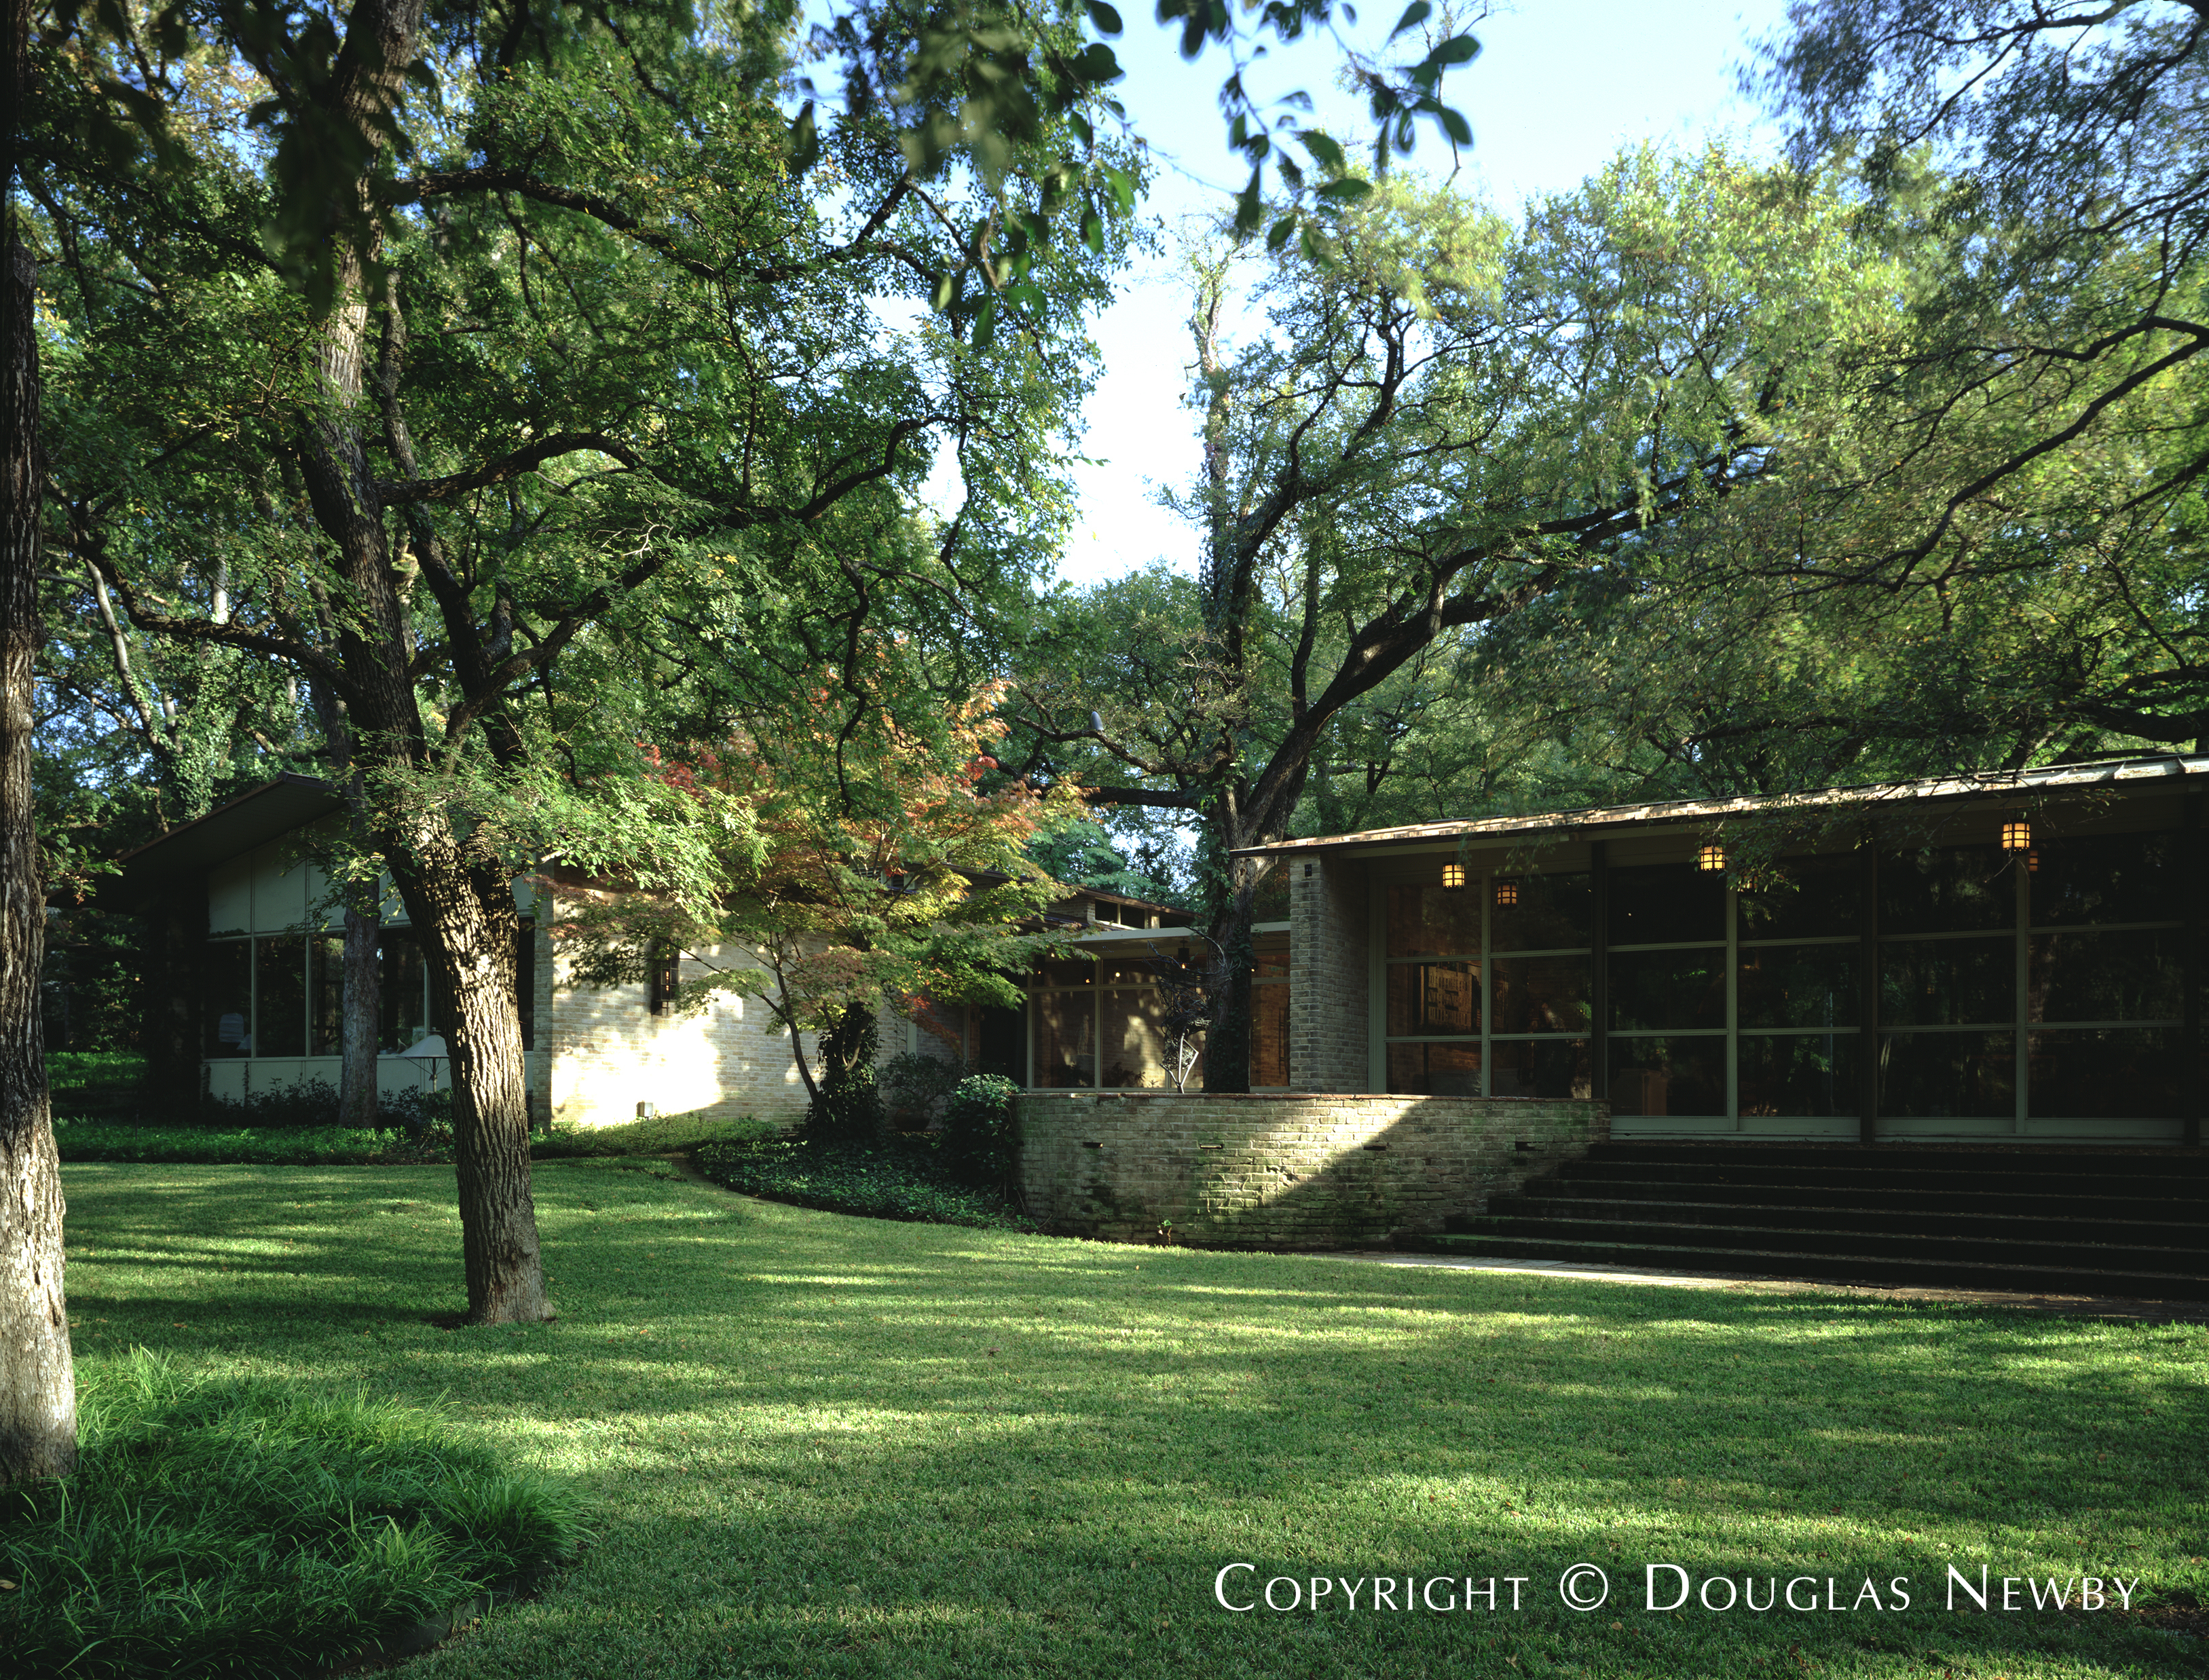 O'Neil Ford Mid-Century Modern Home built in the 1950s